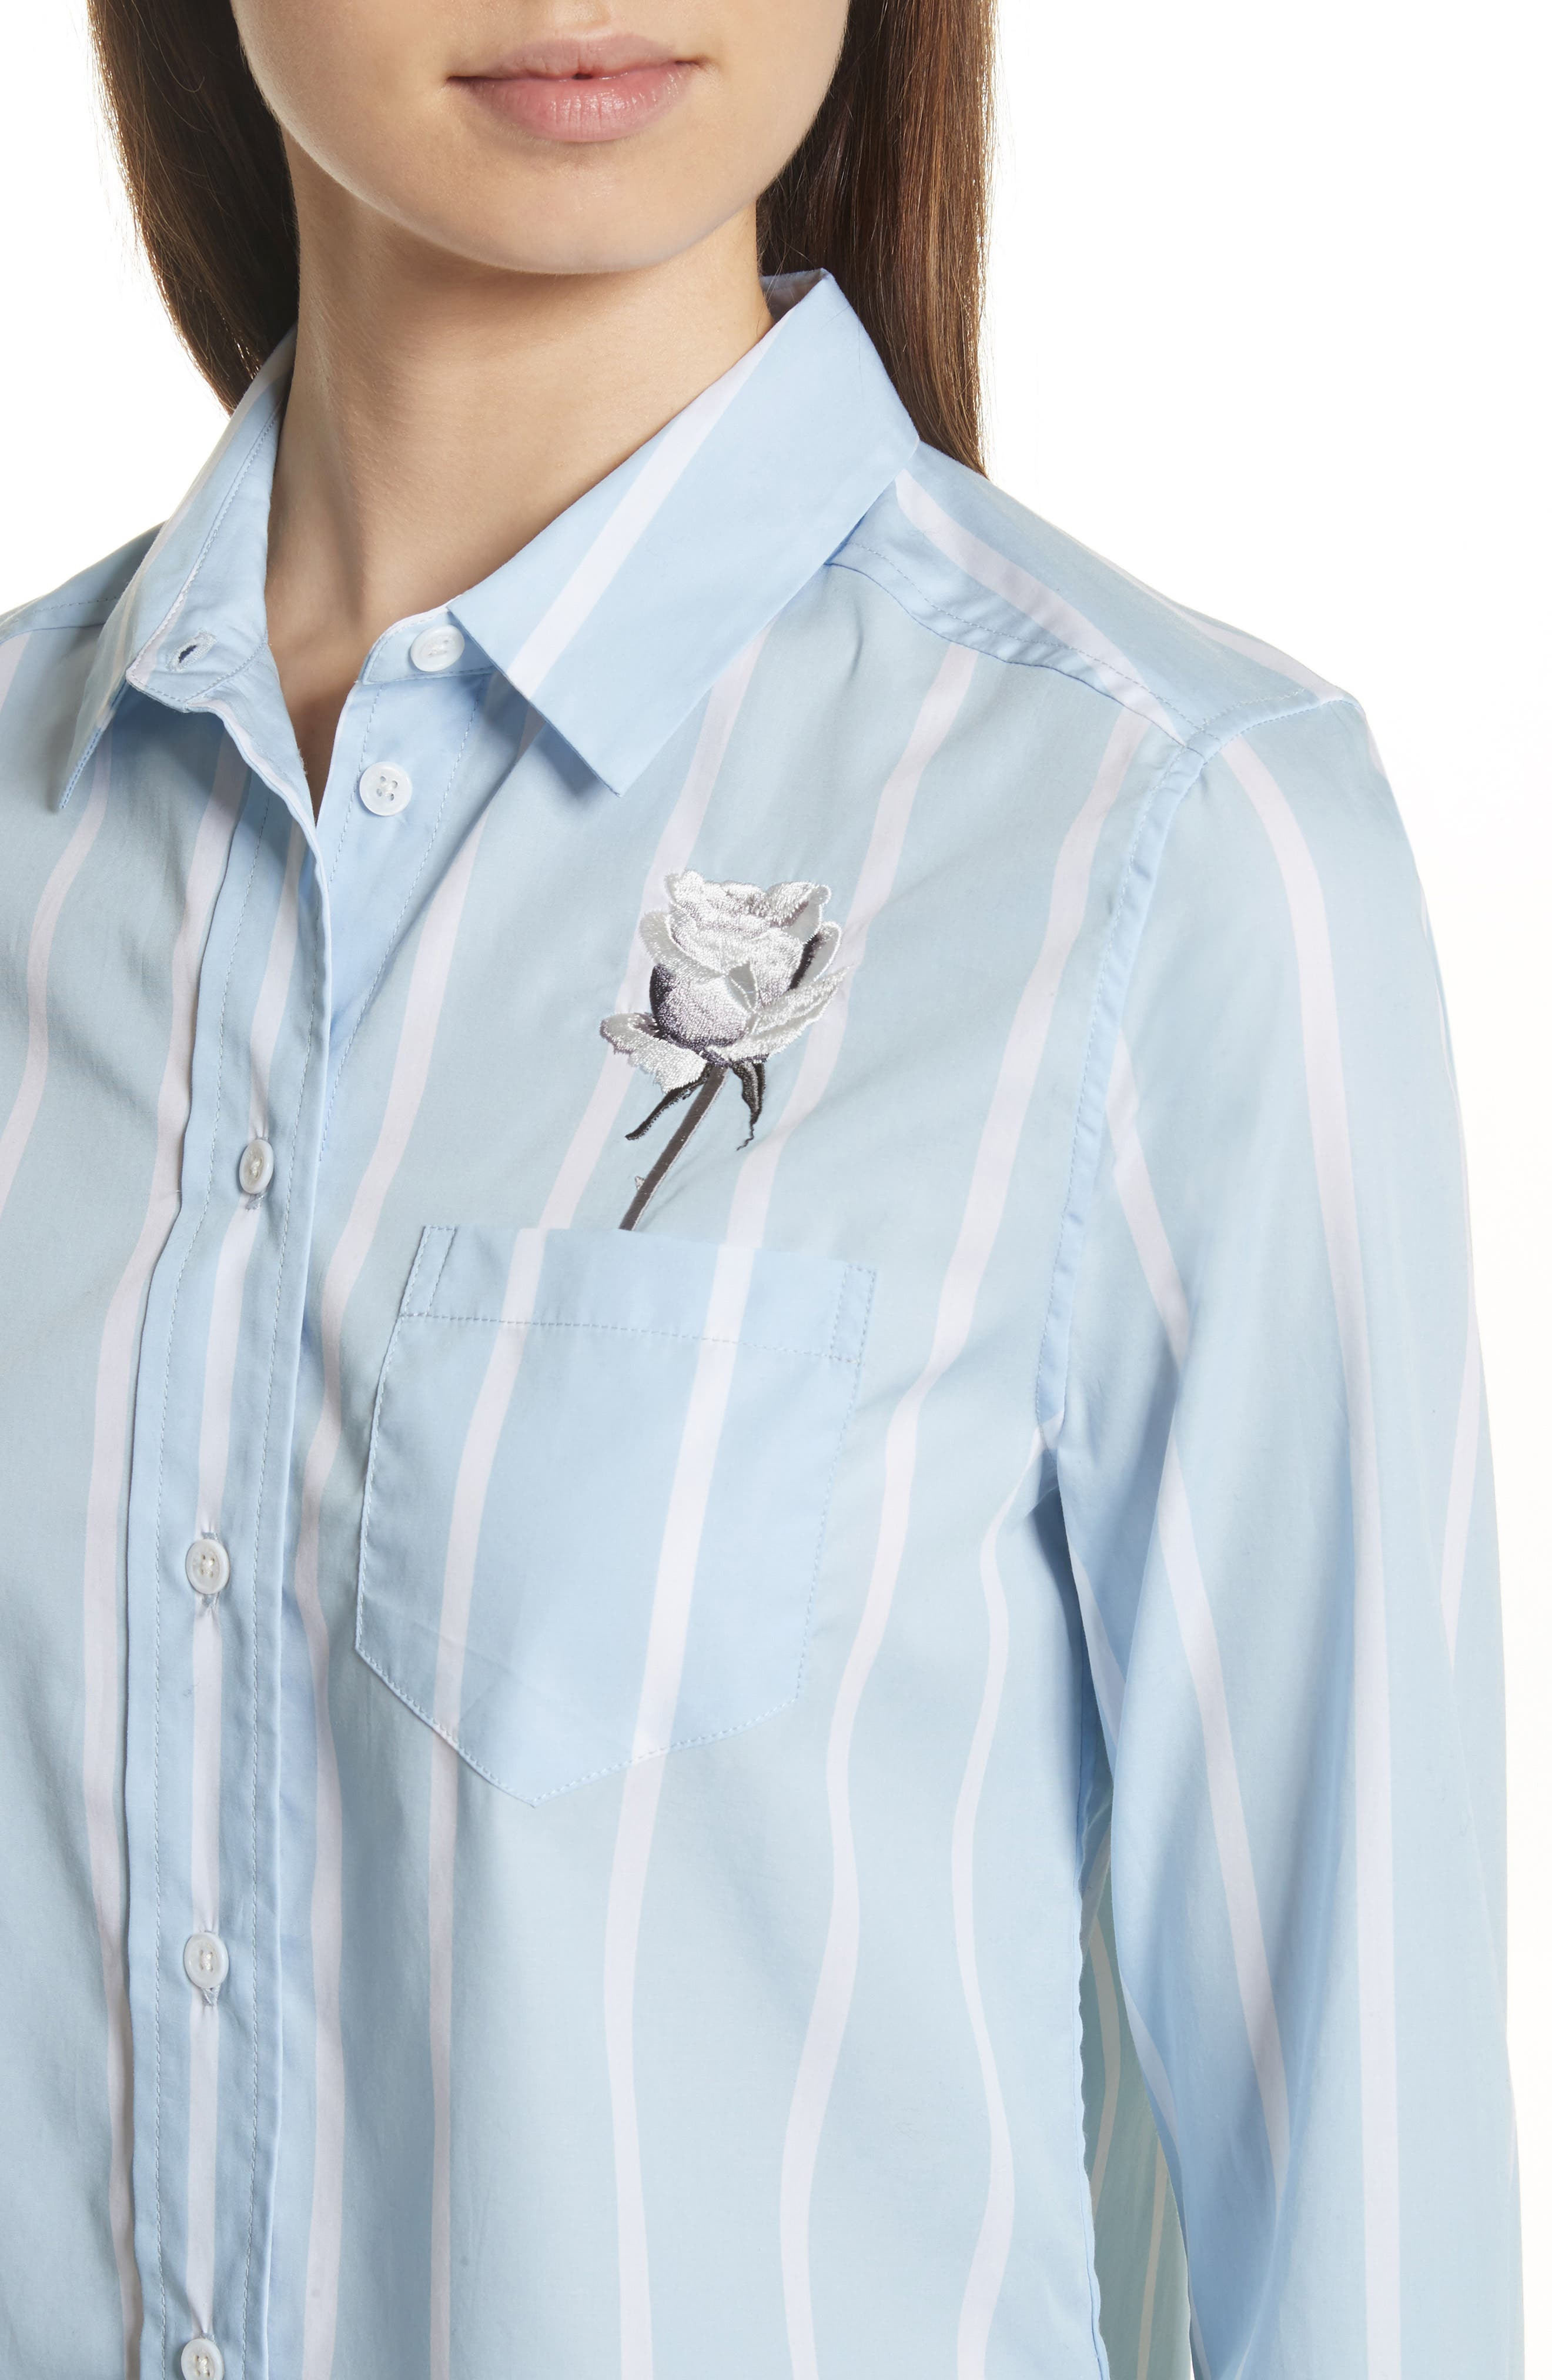 Huntley Embroidered Stripe Cotton Shirt,                             Alternate thumbnail 4, color,                             Skylight / Bright White